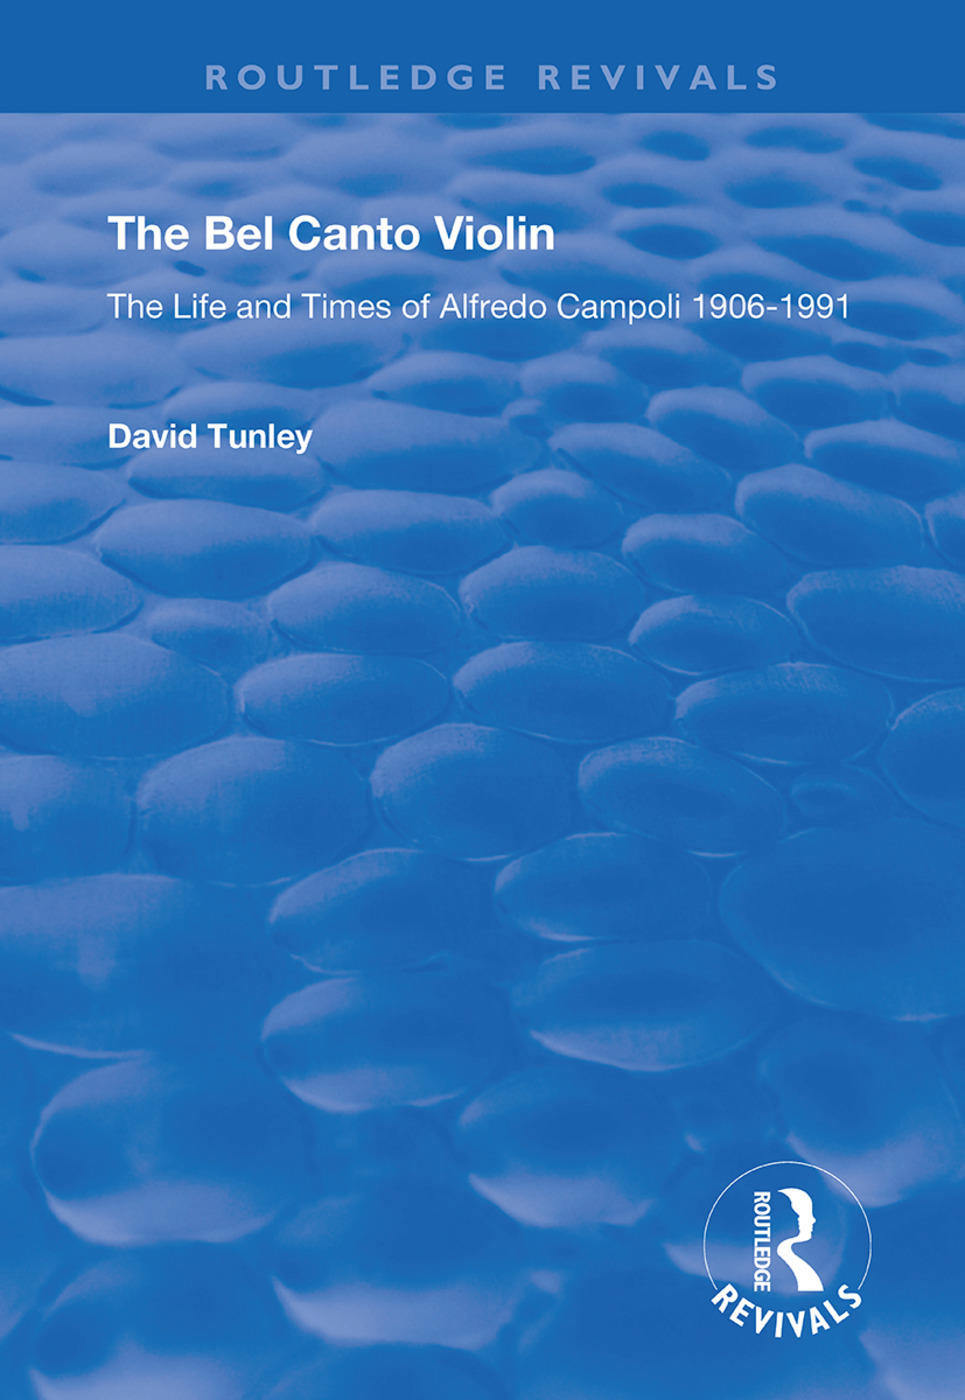 The Bel Canto Violin: The Life and Times of Alfredo Campoli, 1906-1991 book cover